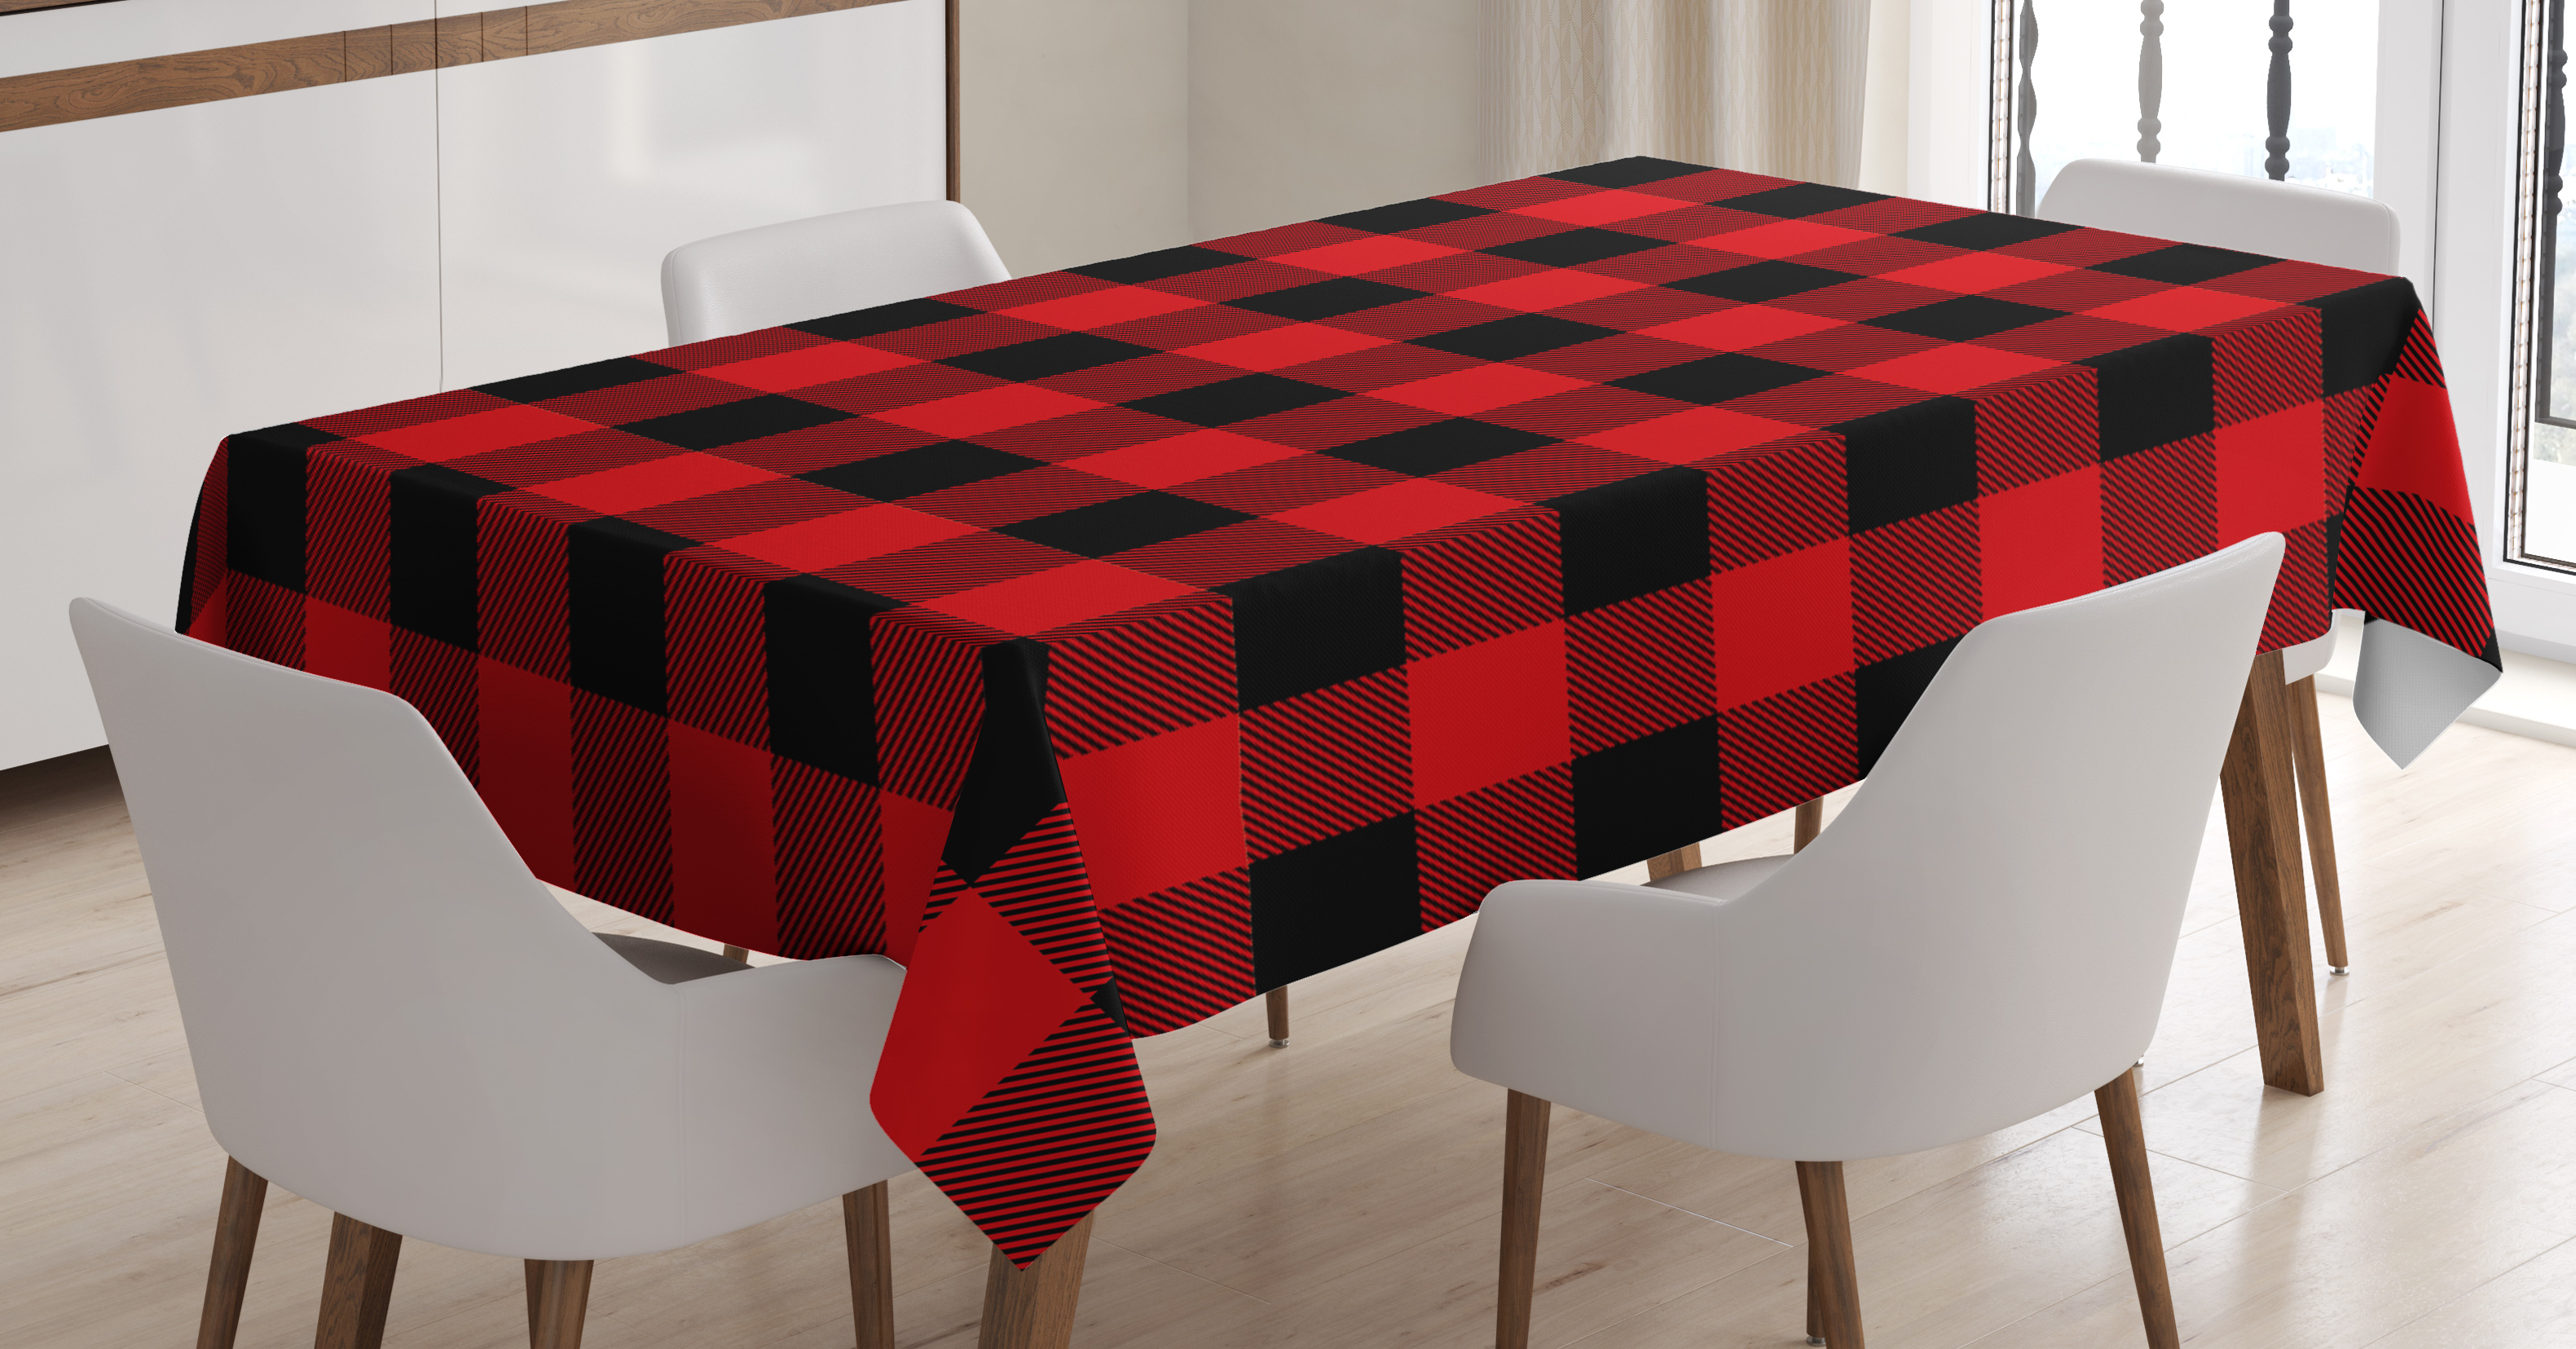 Remarkable Red Plaid Tablecloth Lumberjack Clothing Inspired Square Pattern Checkered Grid Style Quilt Design Rectangular Table Cover For Dining Room Kitchen Spiritservingveterans Wood Chair Design Ideas Spiritservingveteransorg